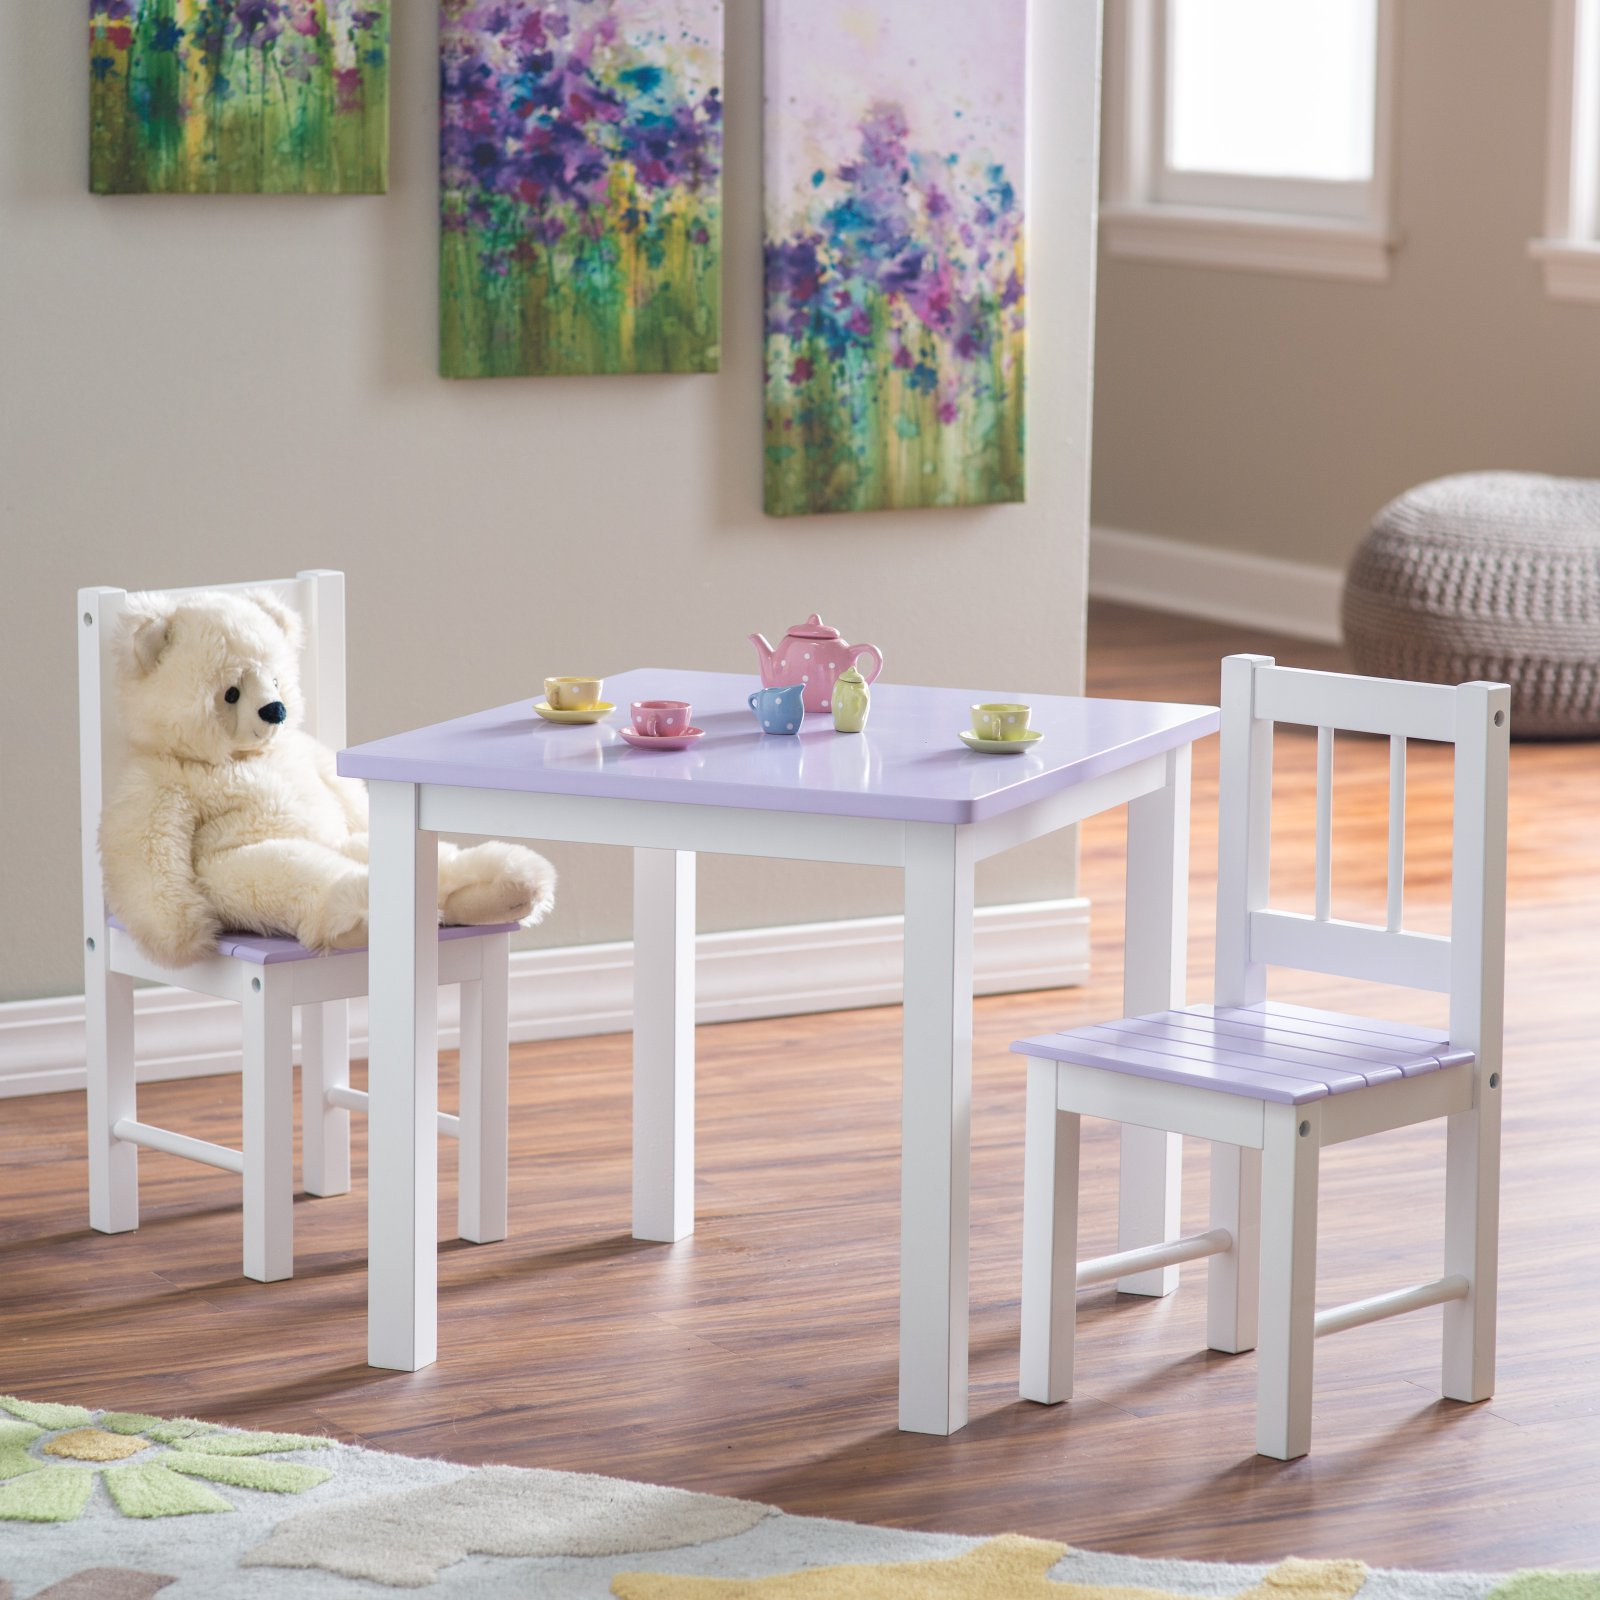 Lipper Kids Small Lilac and White Table and Chair Set